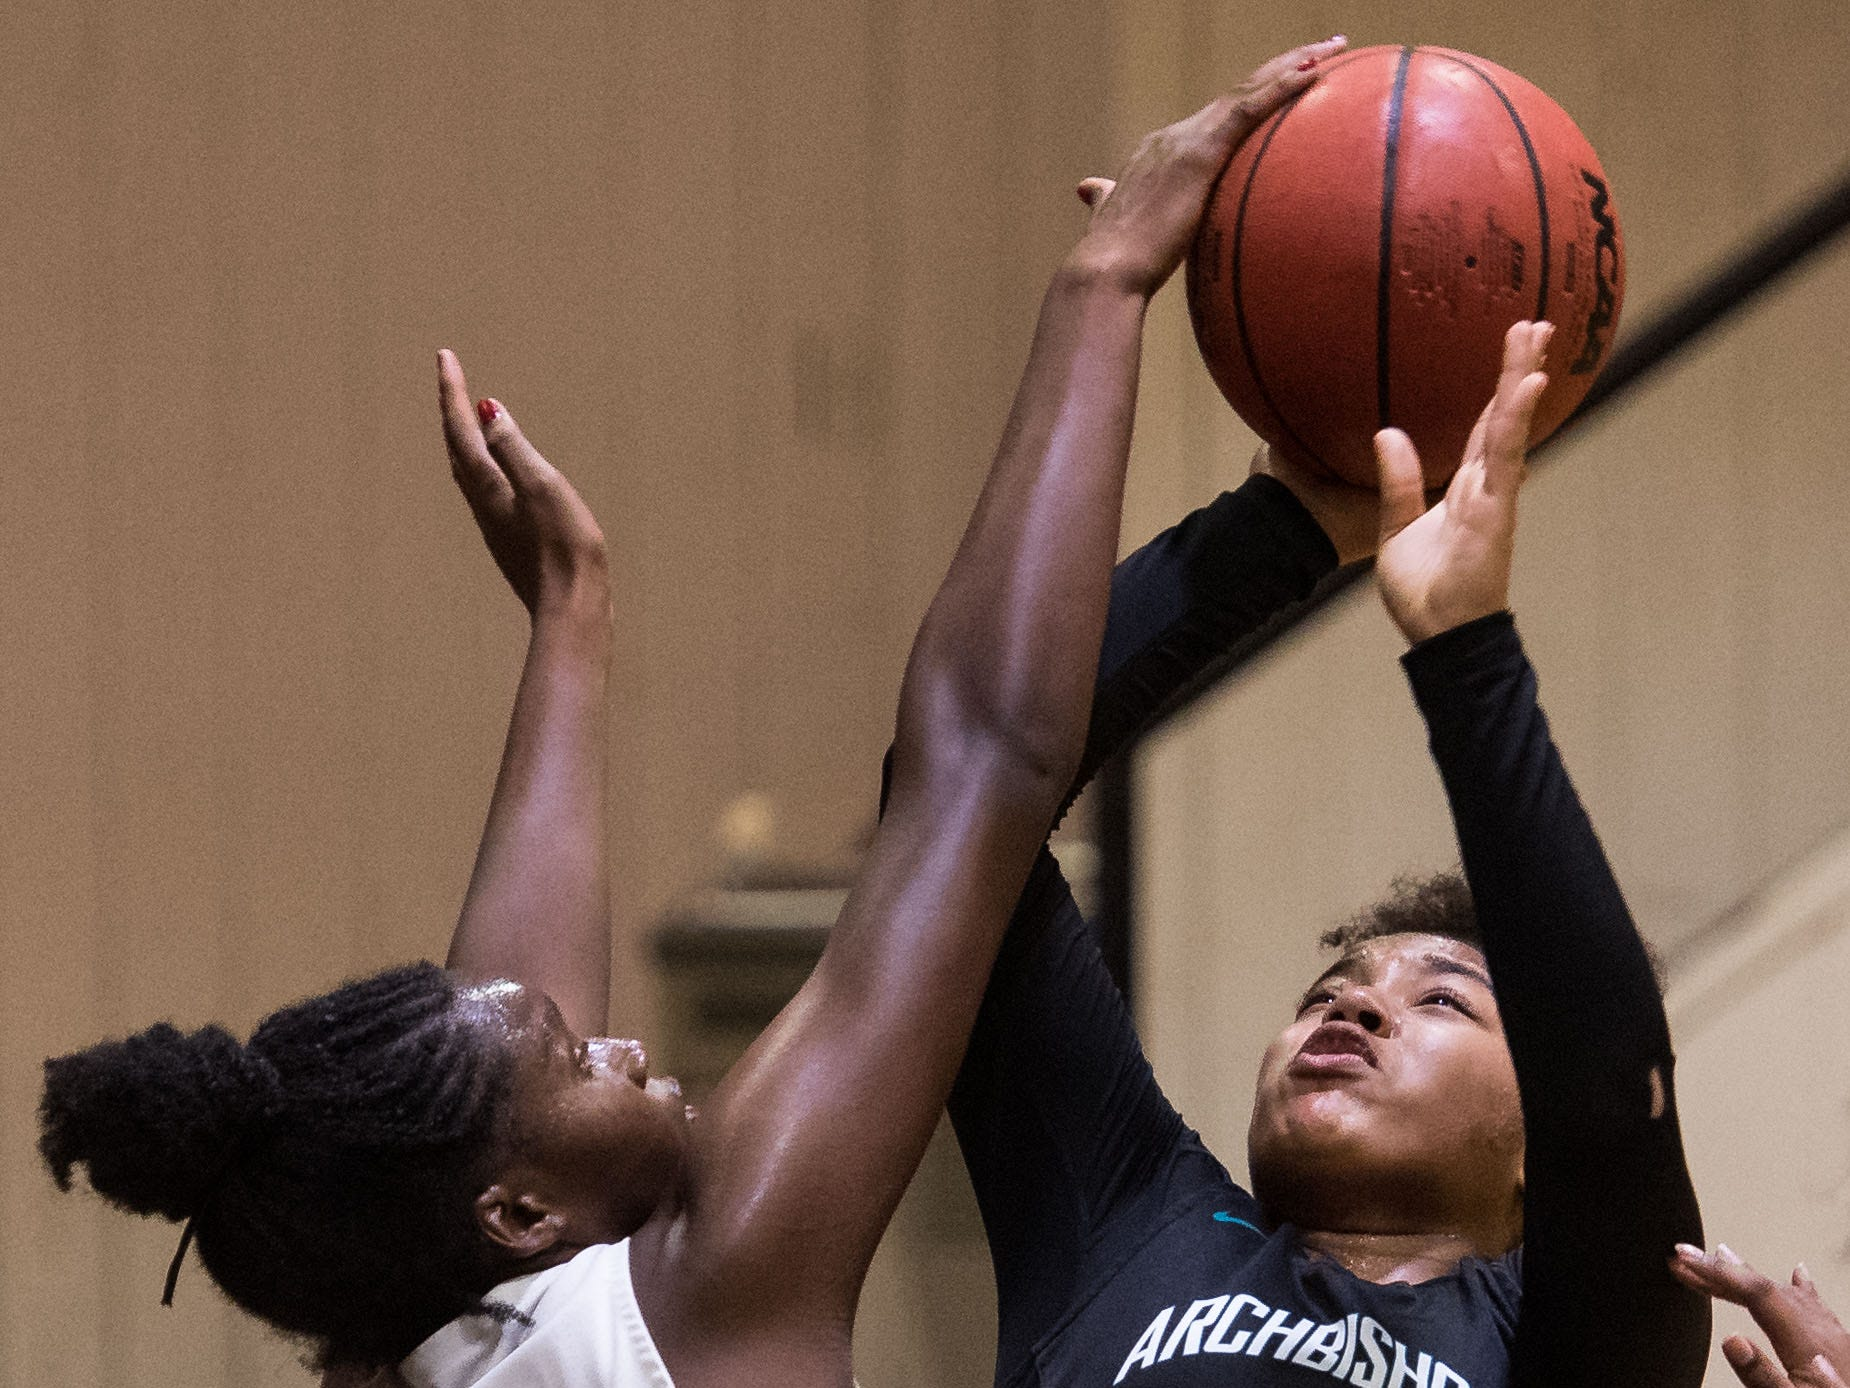 Lincoln Park Academy's Deborah Reese (left) blocks Archbishop McCarthy (Fort Lauderdale) player Mia Avin's shot during the third period of the high school girls basketball regional quarterfinal game Thursday, Feb. 14, 2019, Lincoln Park Academy in Fort Pierce.